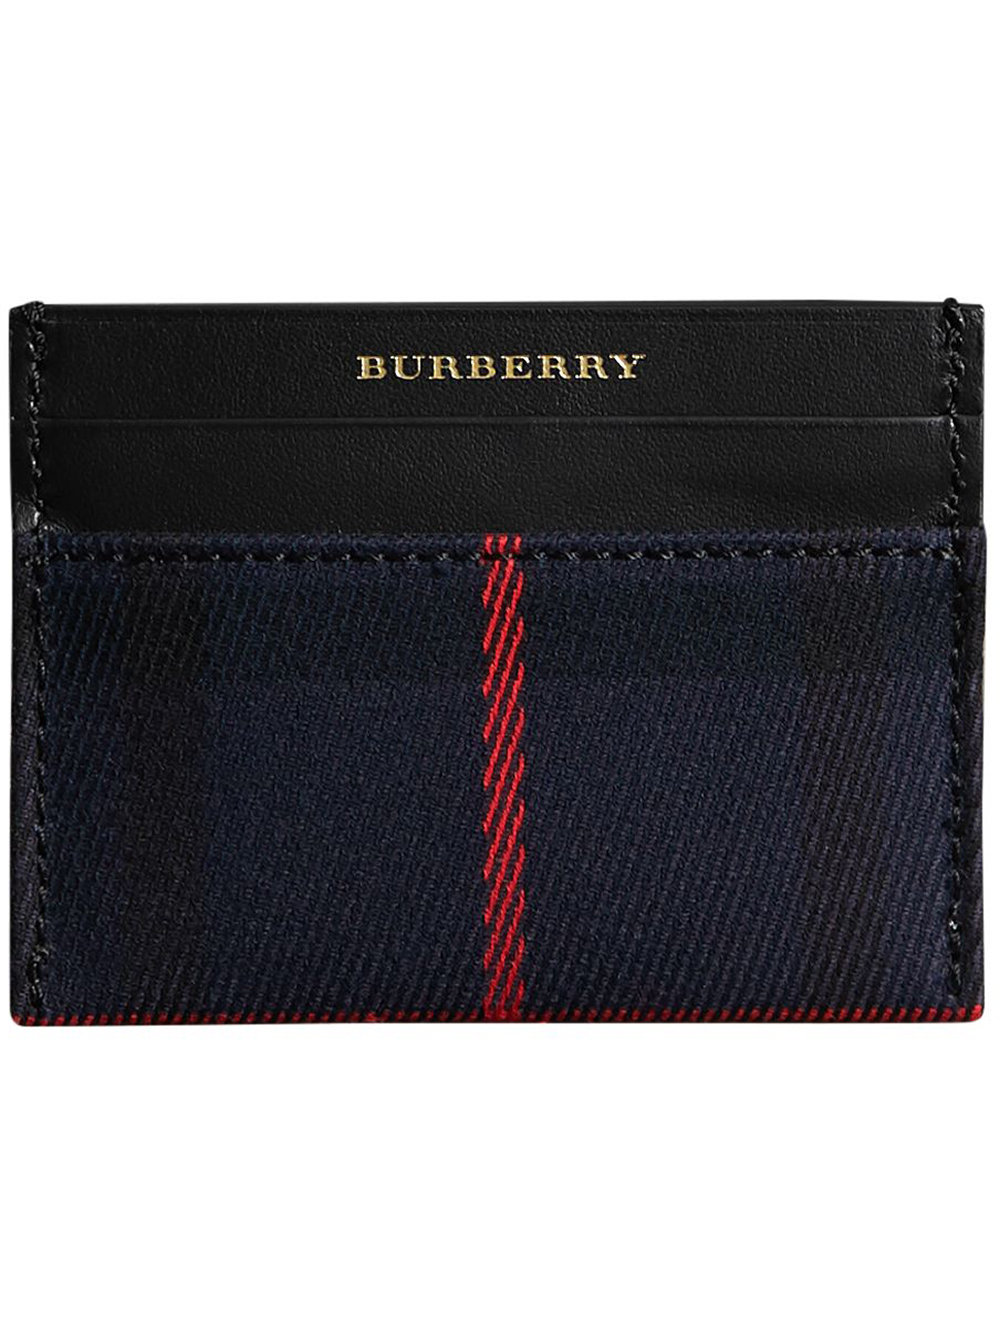 Burberry Tartan Check and Leather Card Case - Black - Glami.sk 88f8d0bab0e